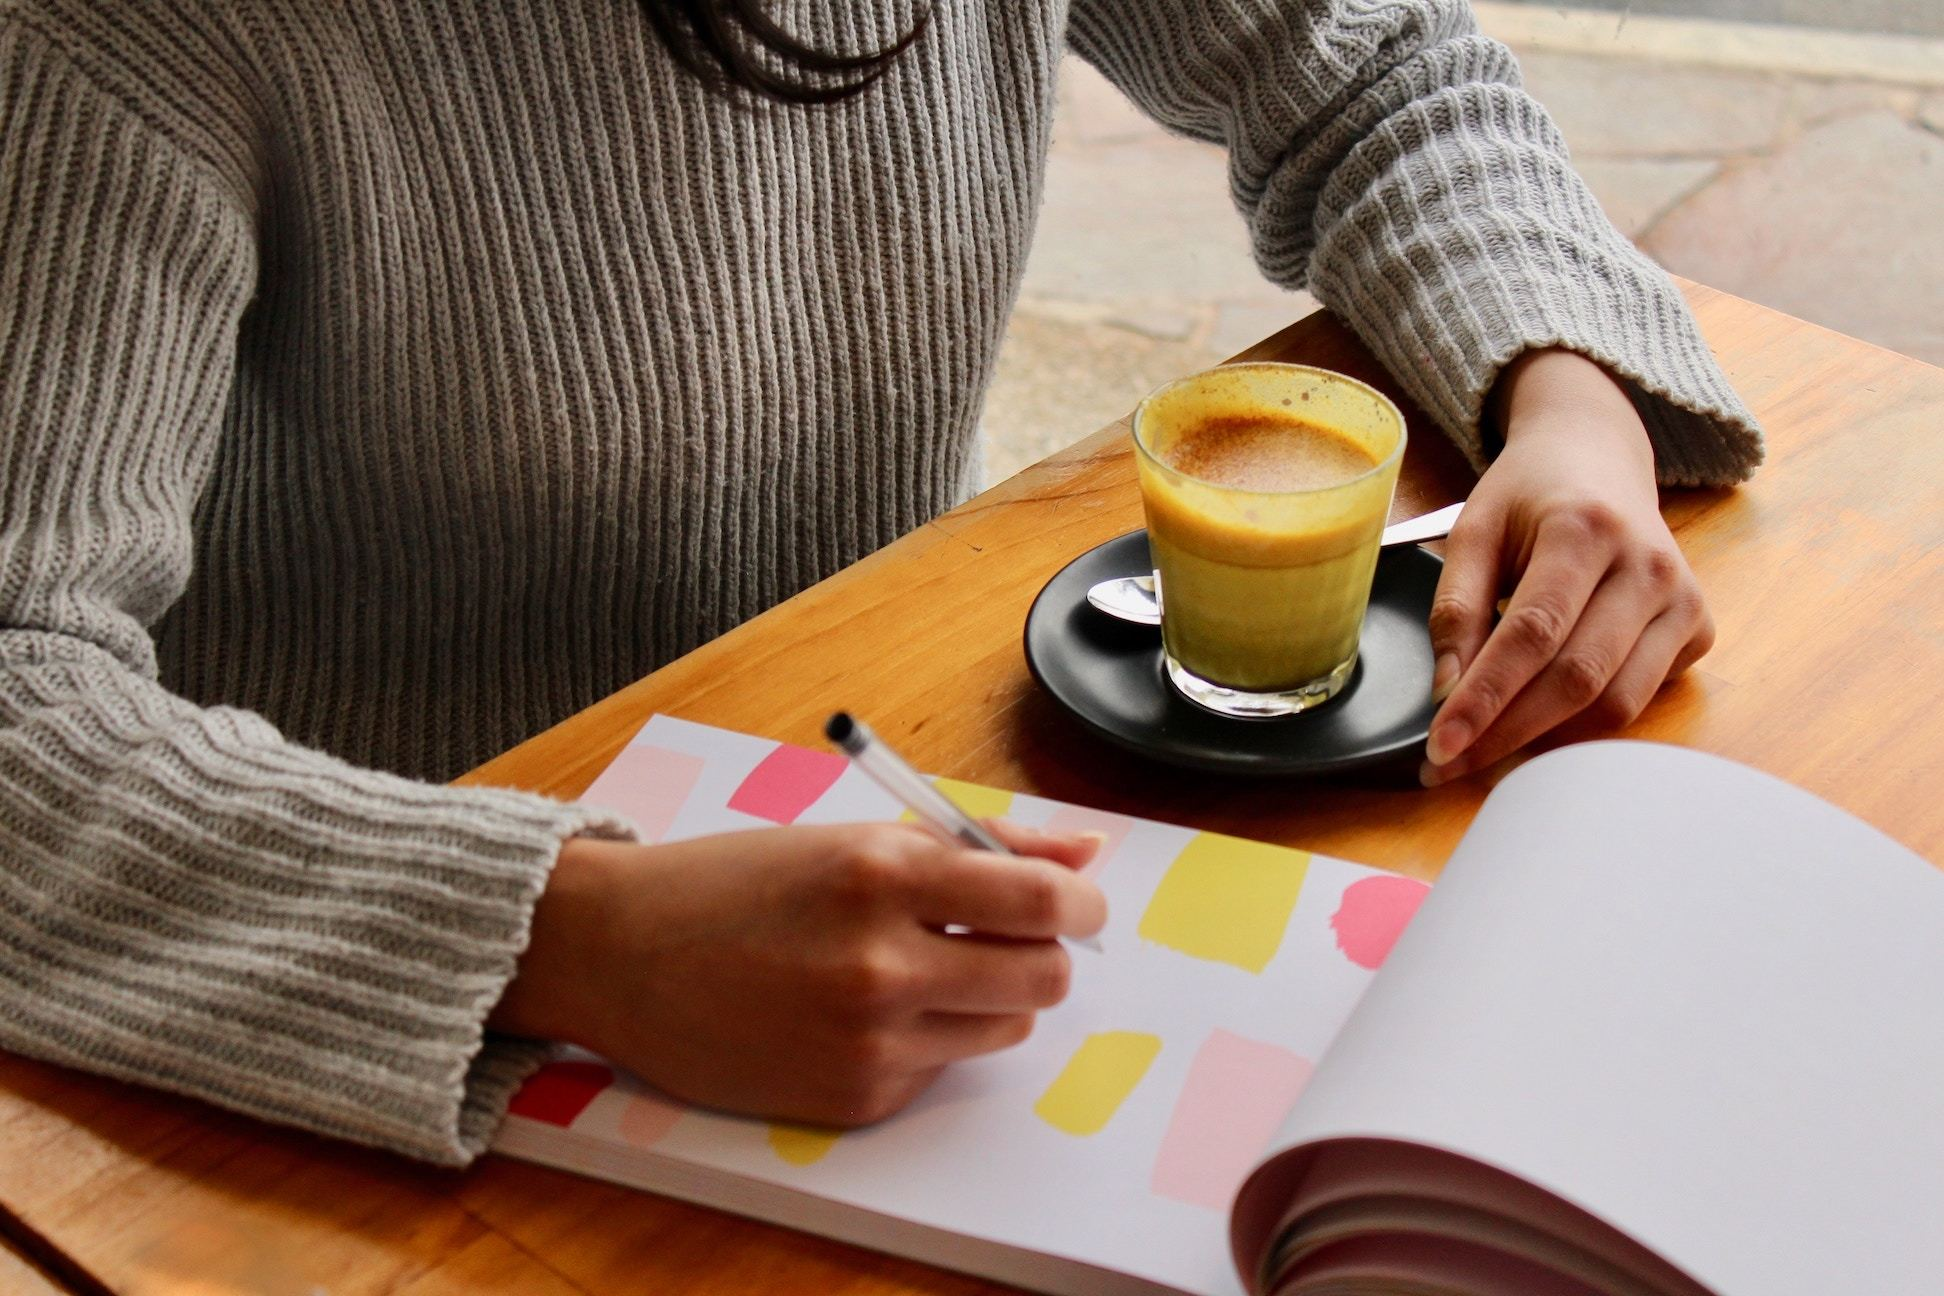 Woman with planning notebook and coffee